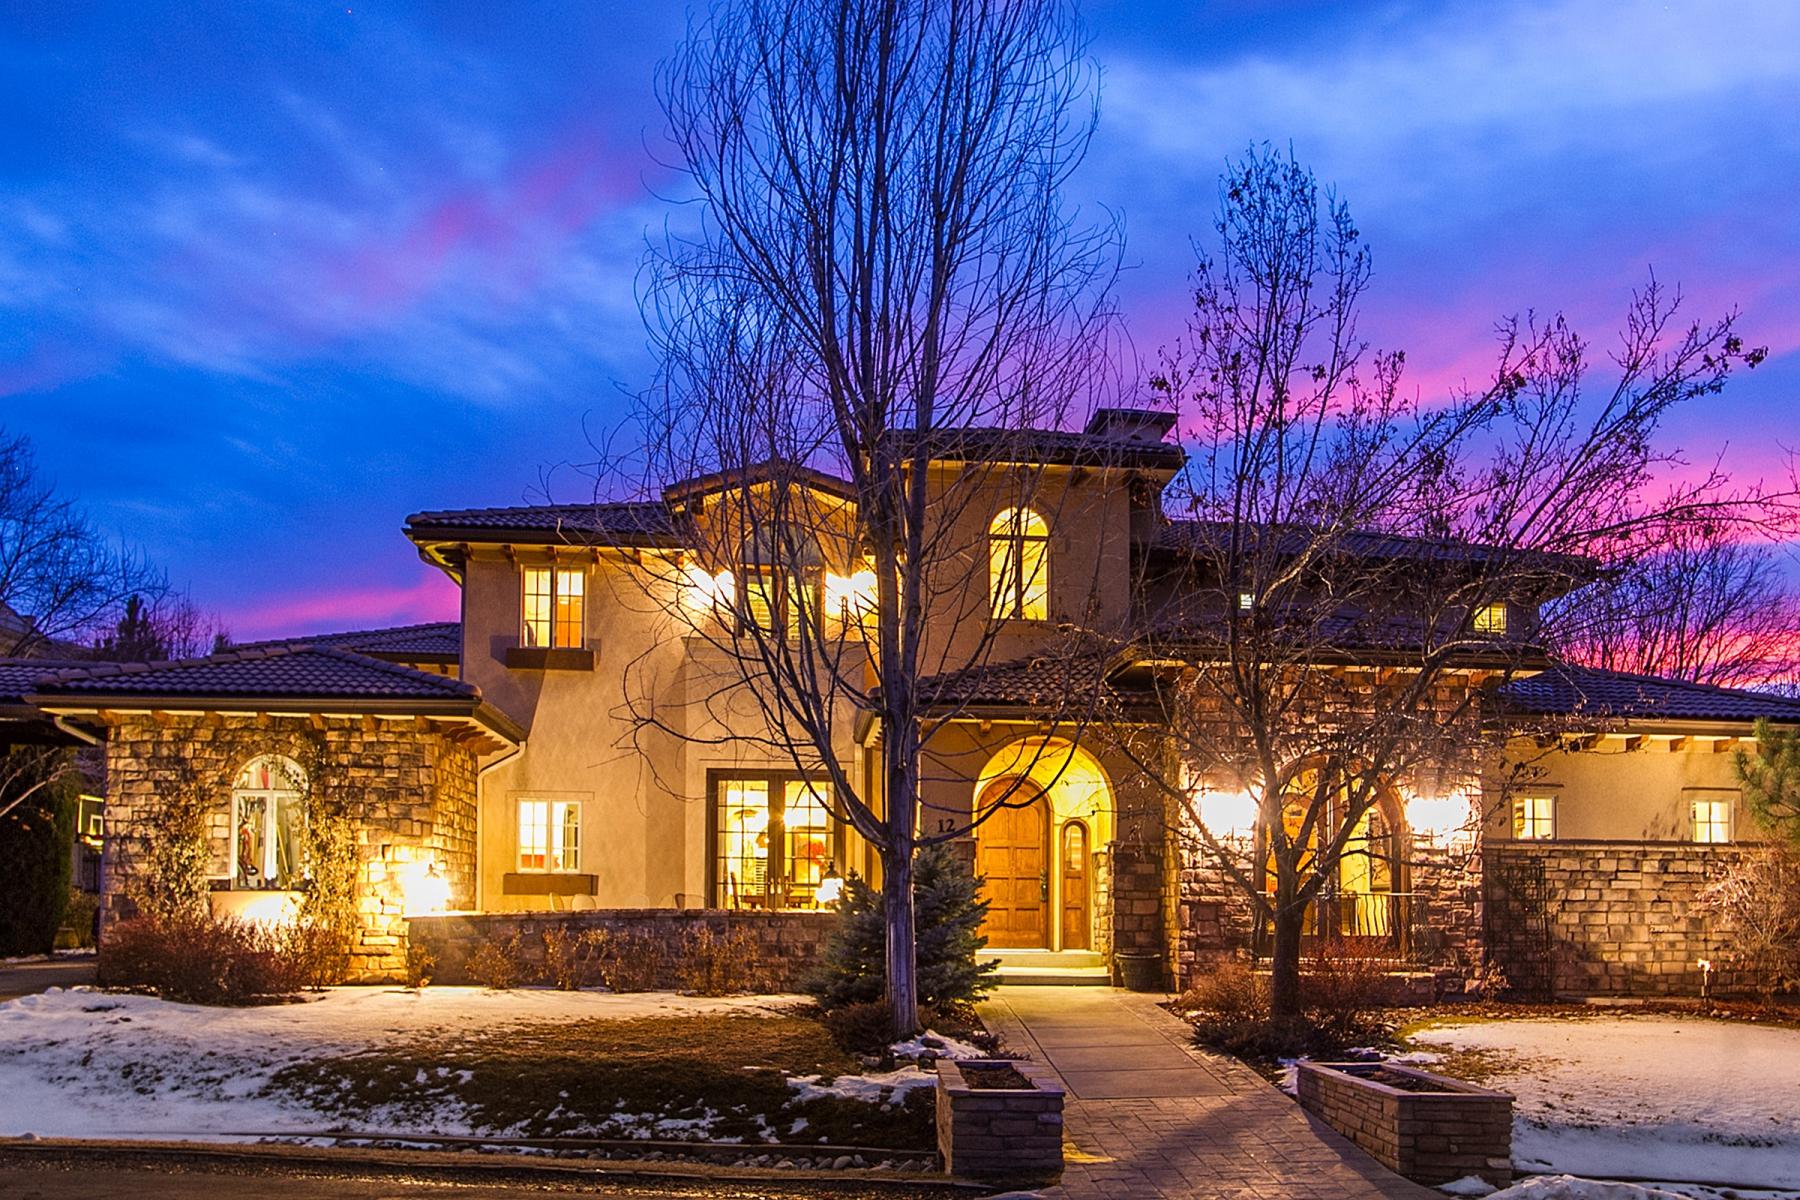 Single Family Home for Sale at Beautiful Buell Mansion family home, interior location with designer upgrades! 12 Foxtail Cir Cherry Hills Village, Colorado 80113 United States